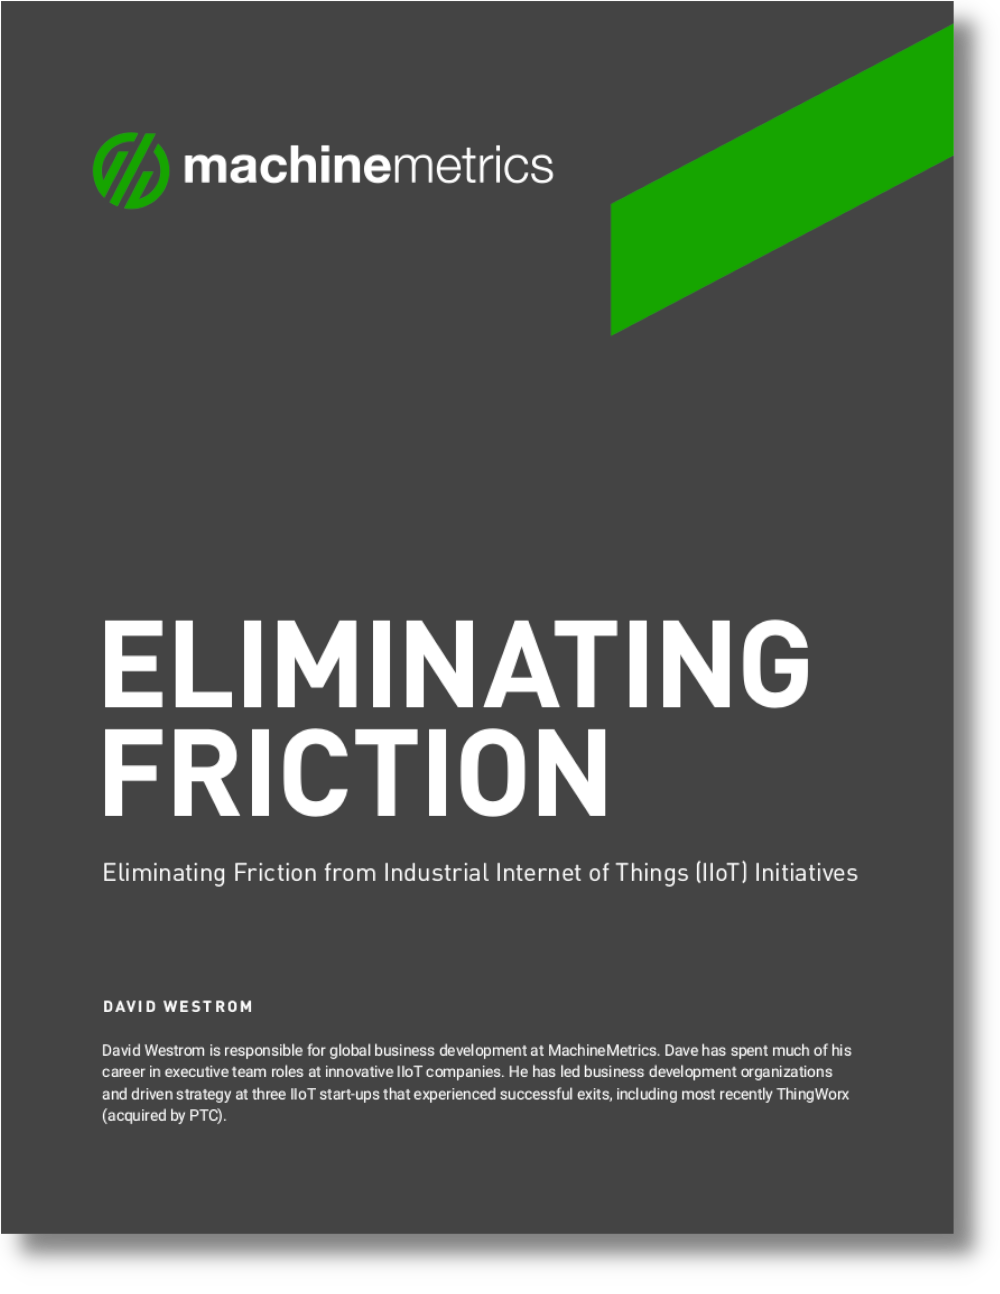 Eliminating Friction from Industrial IoT Initiatives White Paper